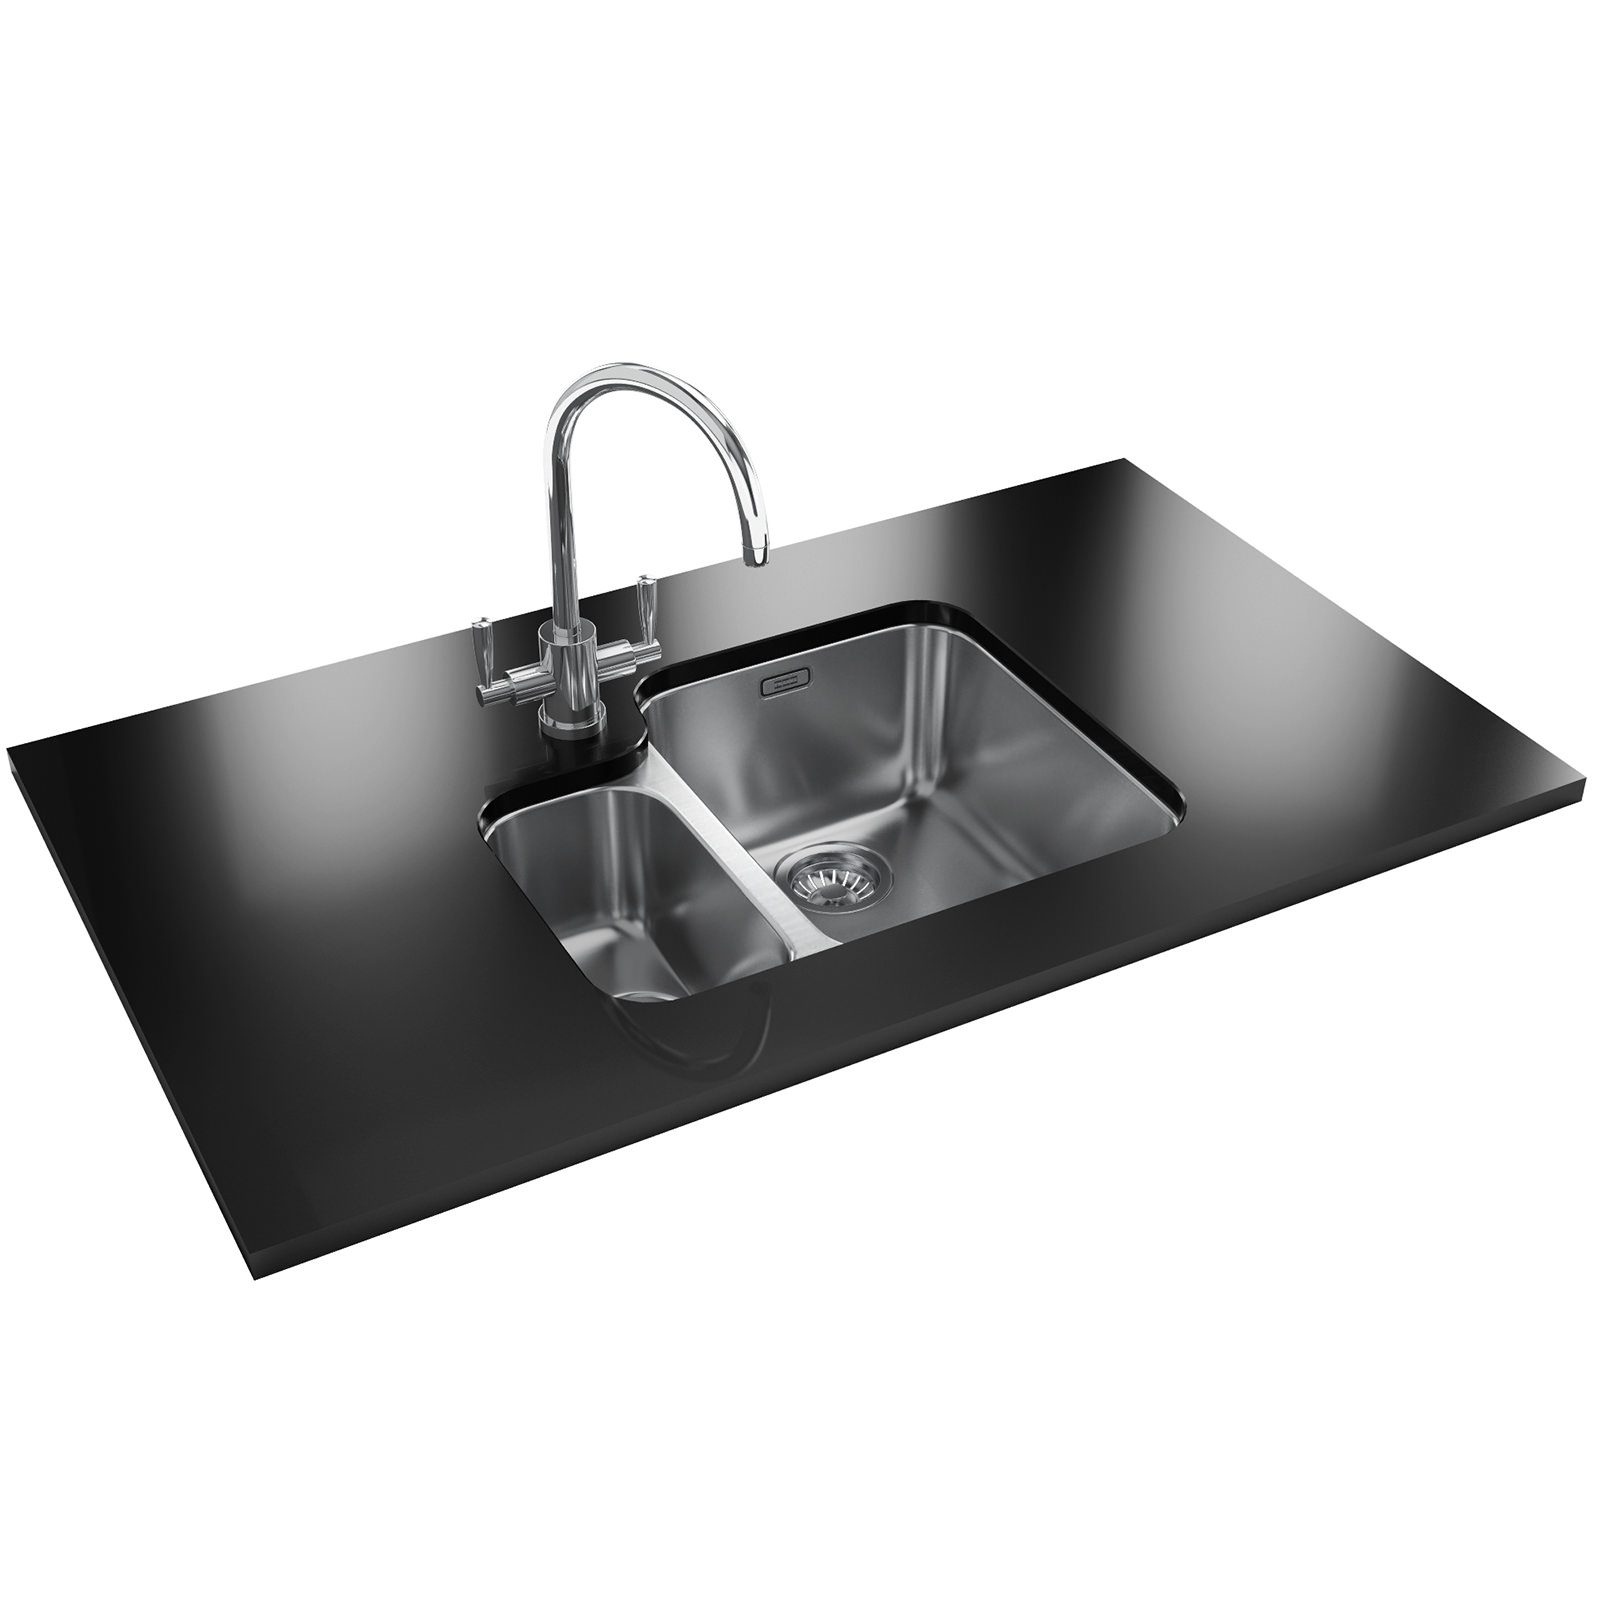 Franke Ss Sinks : Franke Ariane ARX 160 Stainless Steel 1.5 Bowl Undermount Sink 122 ...